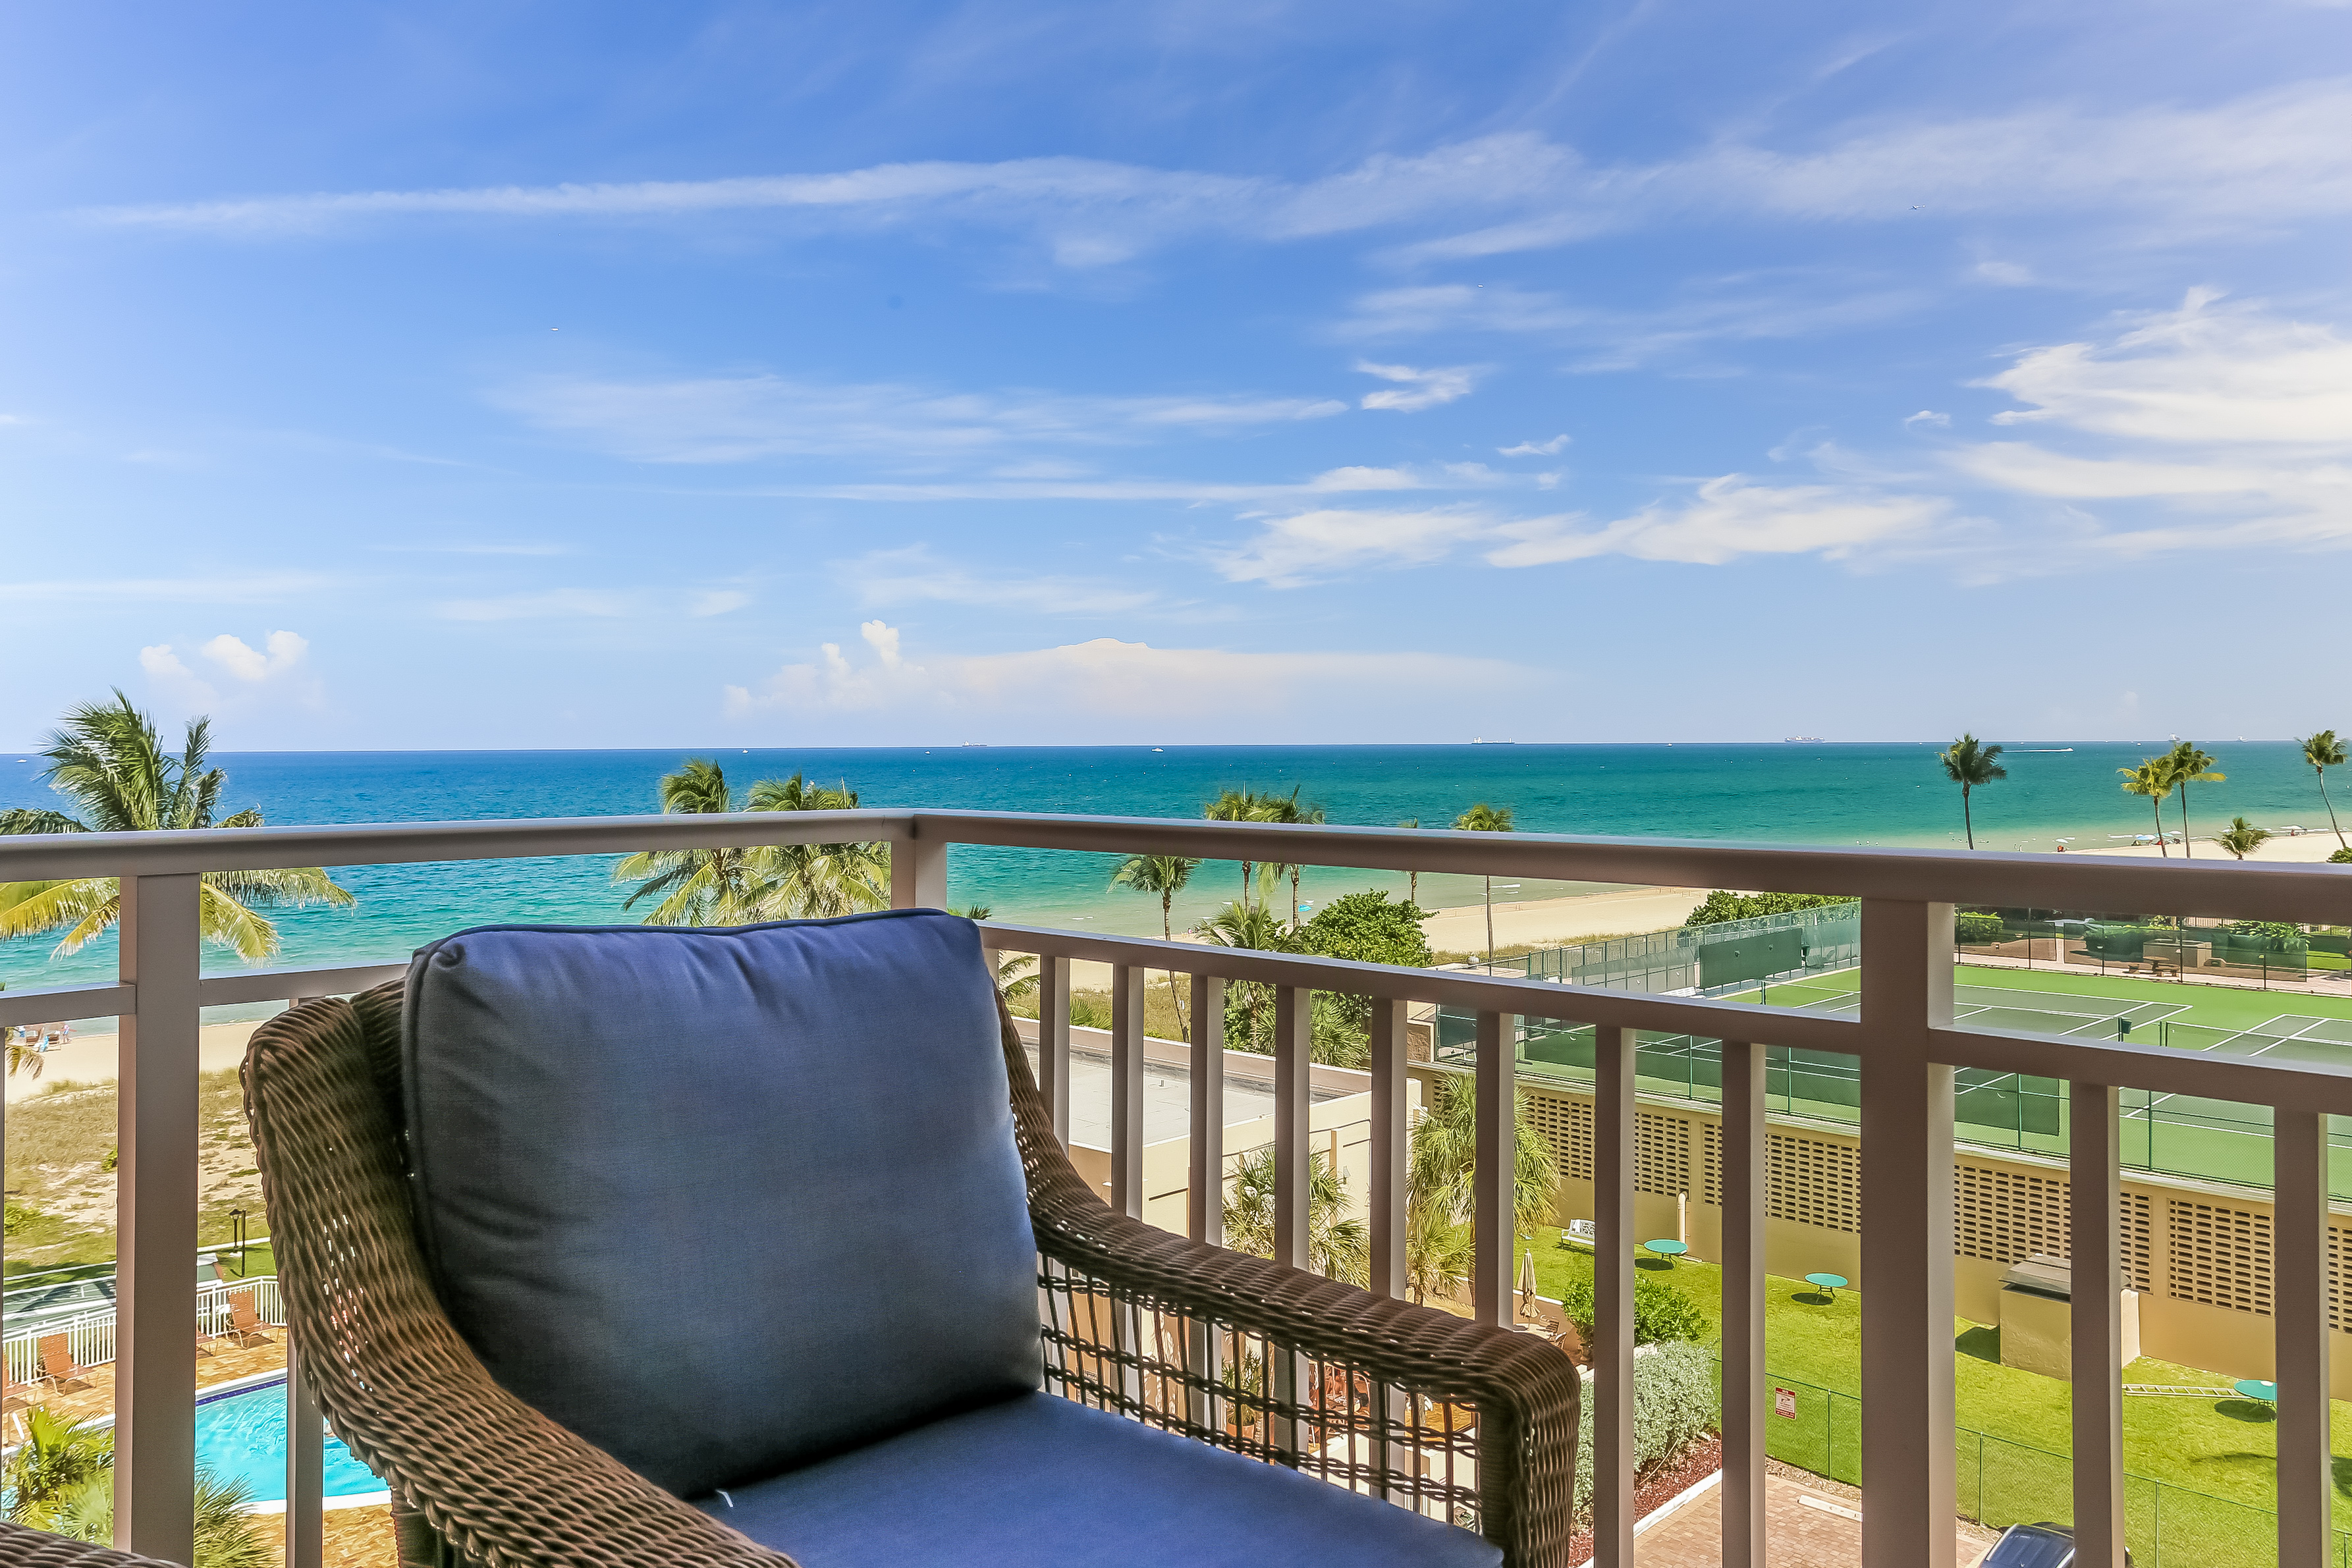 Condominium for Sale at 5200 N Ocean Blvd #607B 5200 N Ocean Blvd 607B Lauderdale By The Sea, Florida, 33308 United States